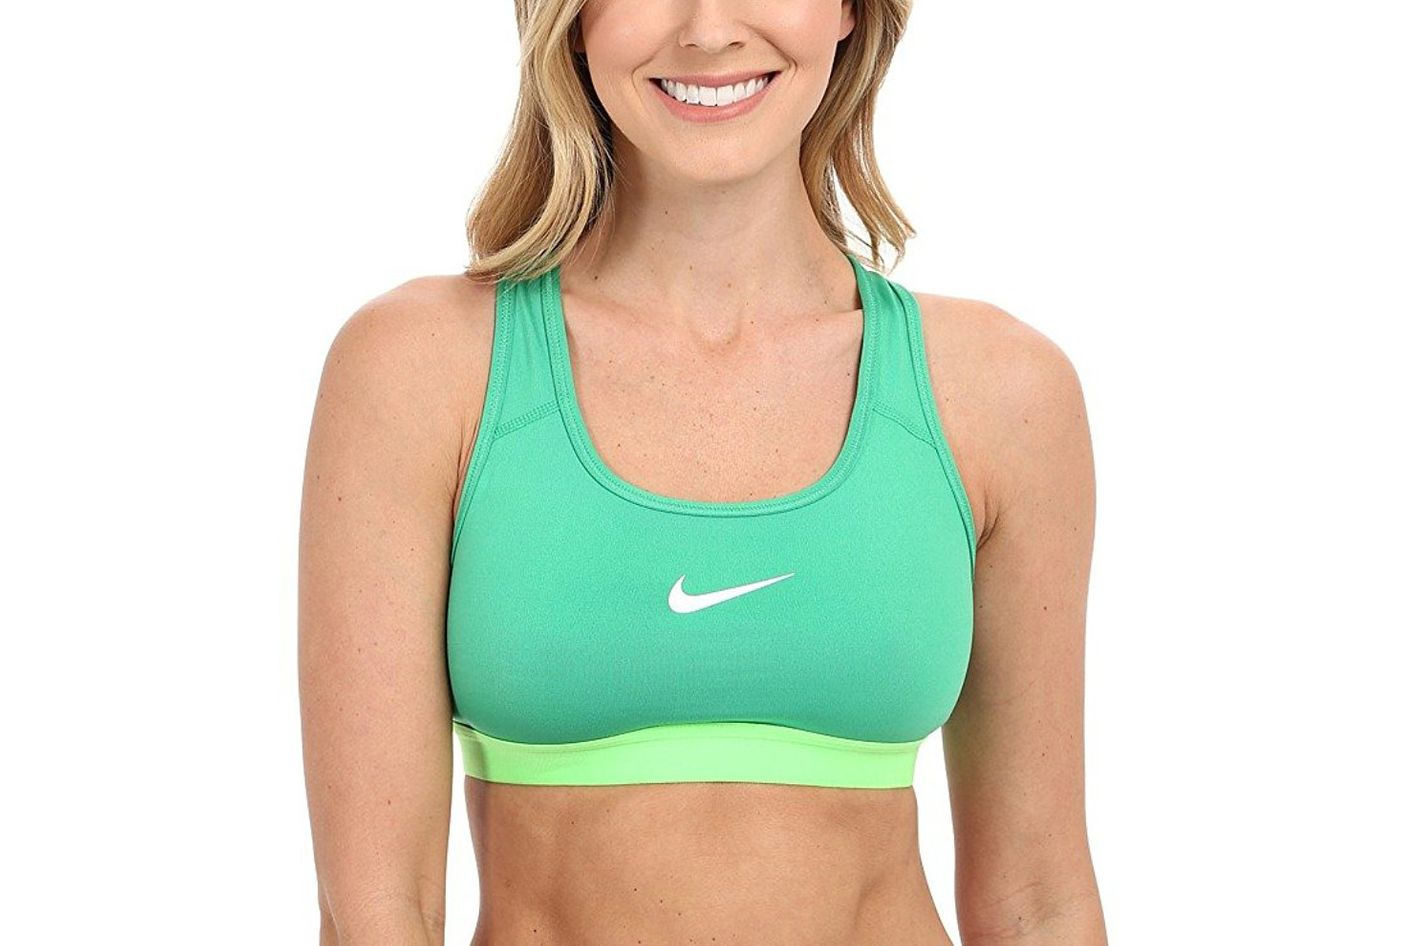 ce105f1b0e2f97 Nike Women s Pro Classic Sports Bra at Amazon